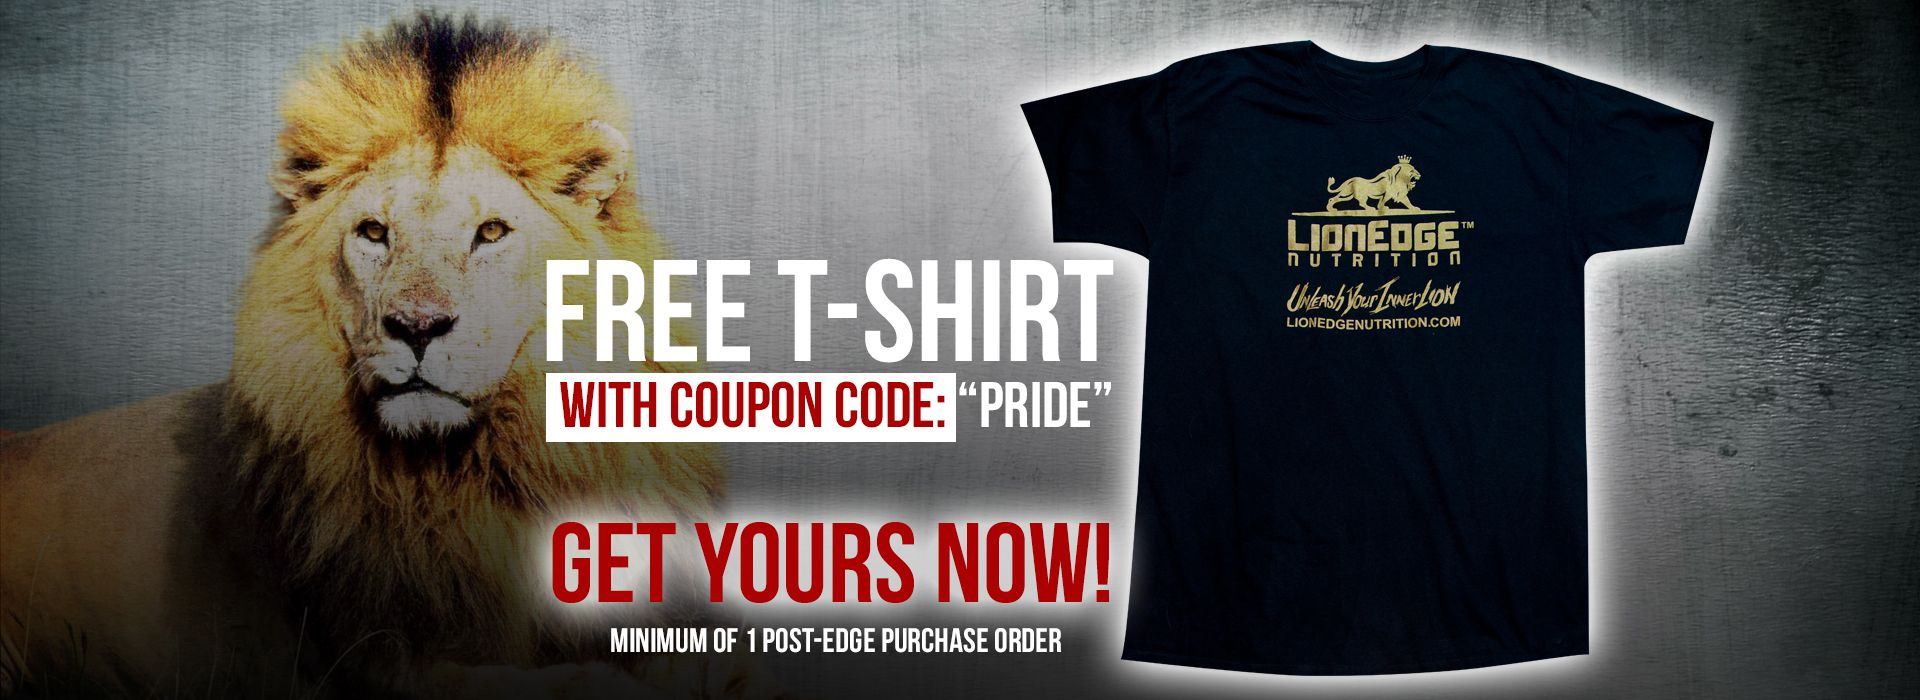 Free LionEdge Nutrition T-Shirt With Coupon Code